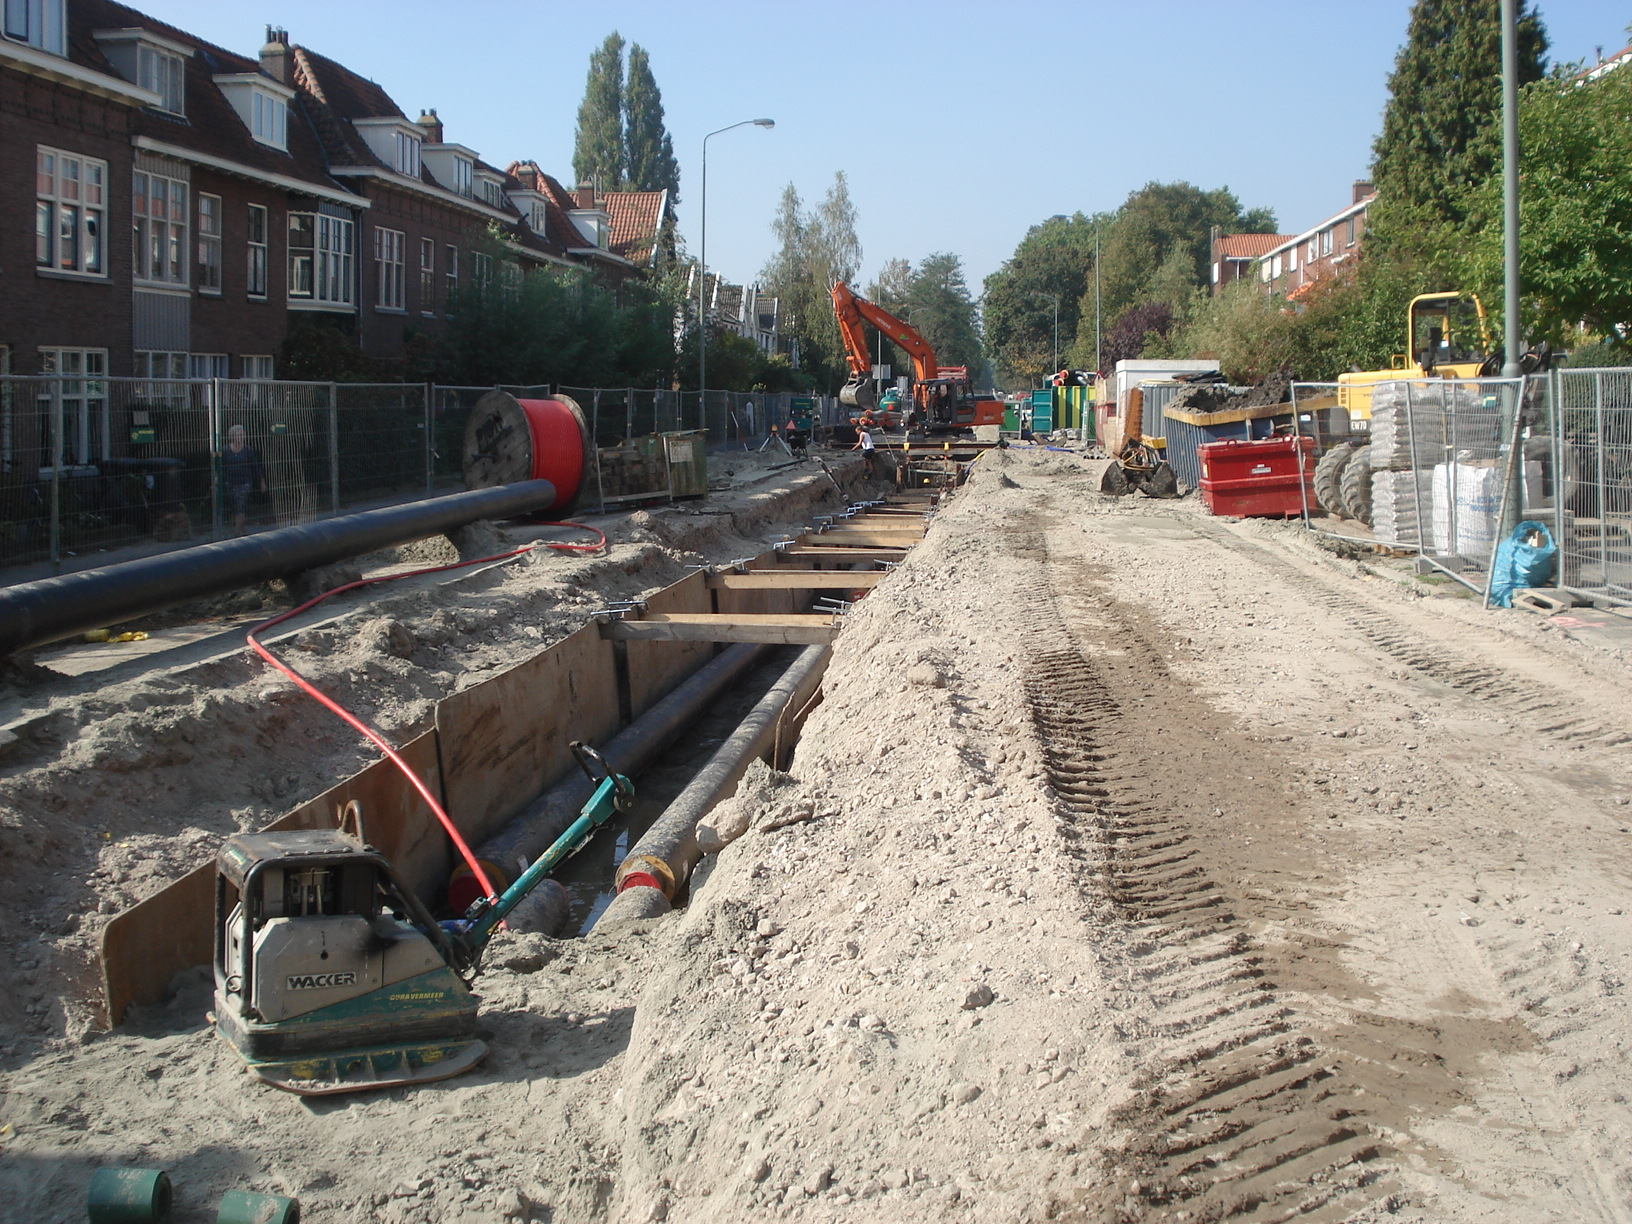 The Drechtsteden: moving away from fossil gas and involving residents in the process